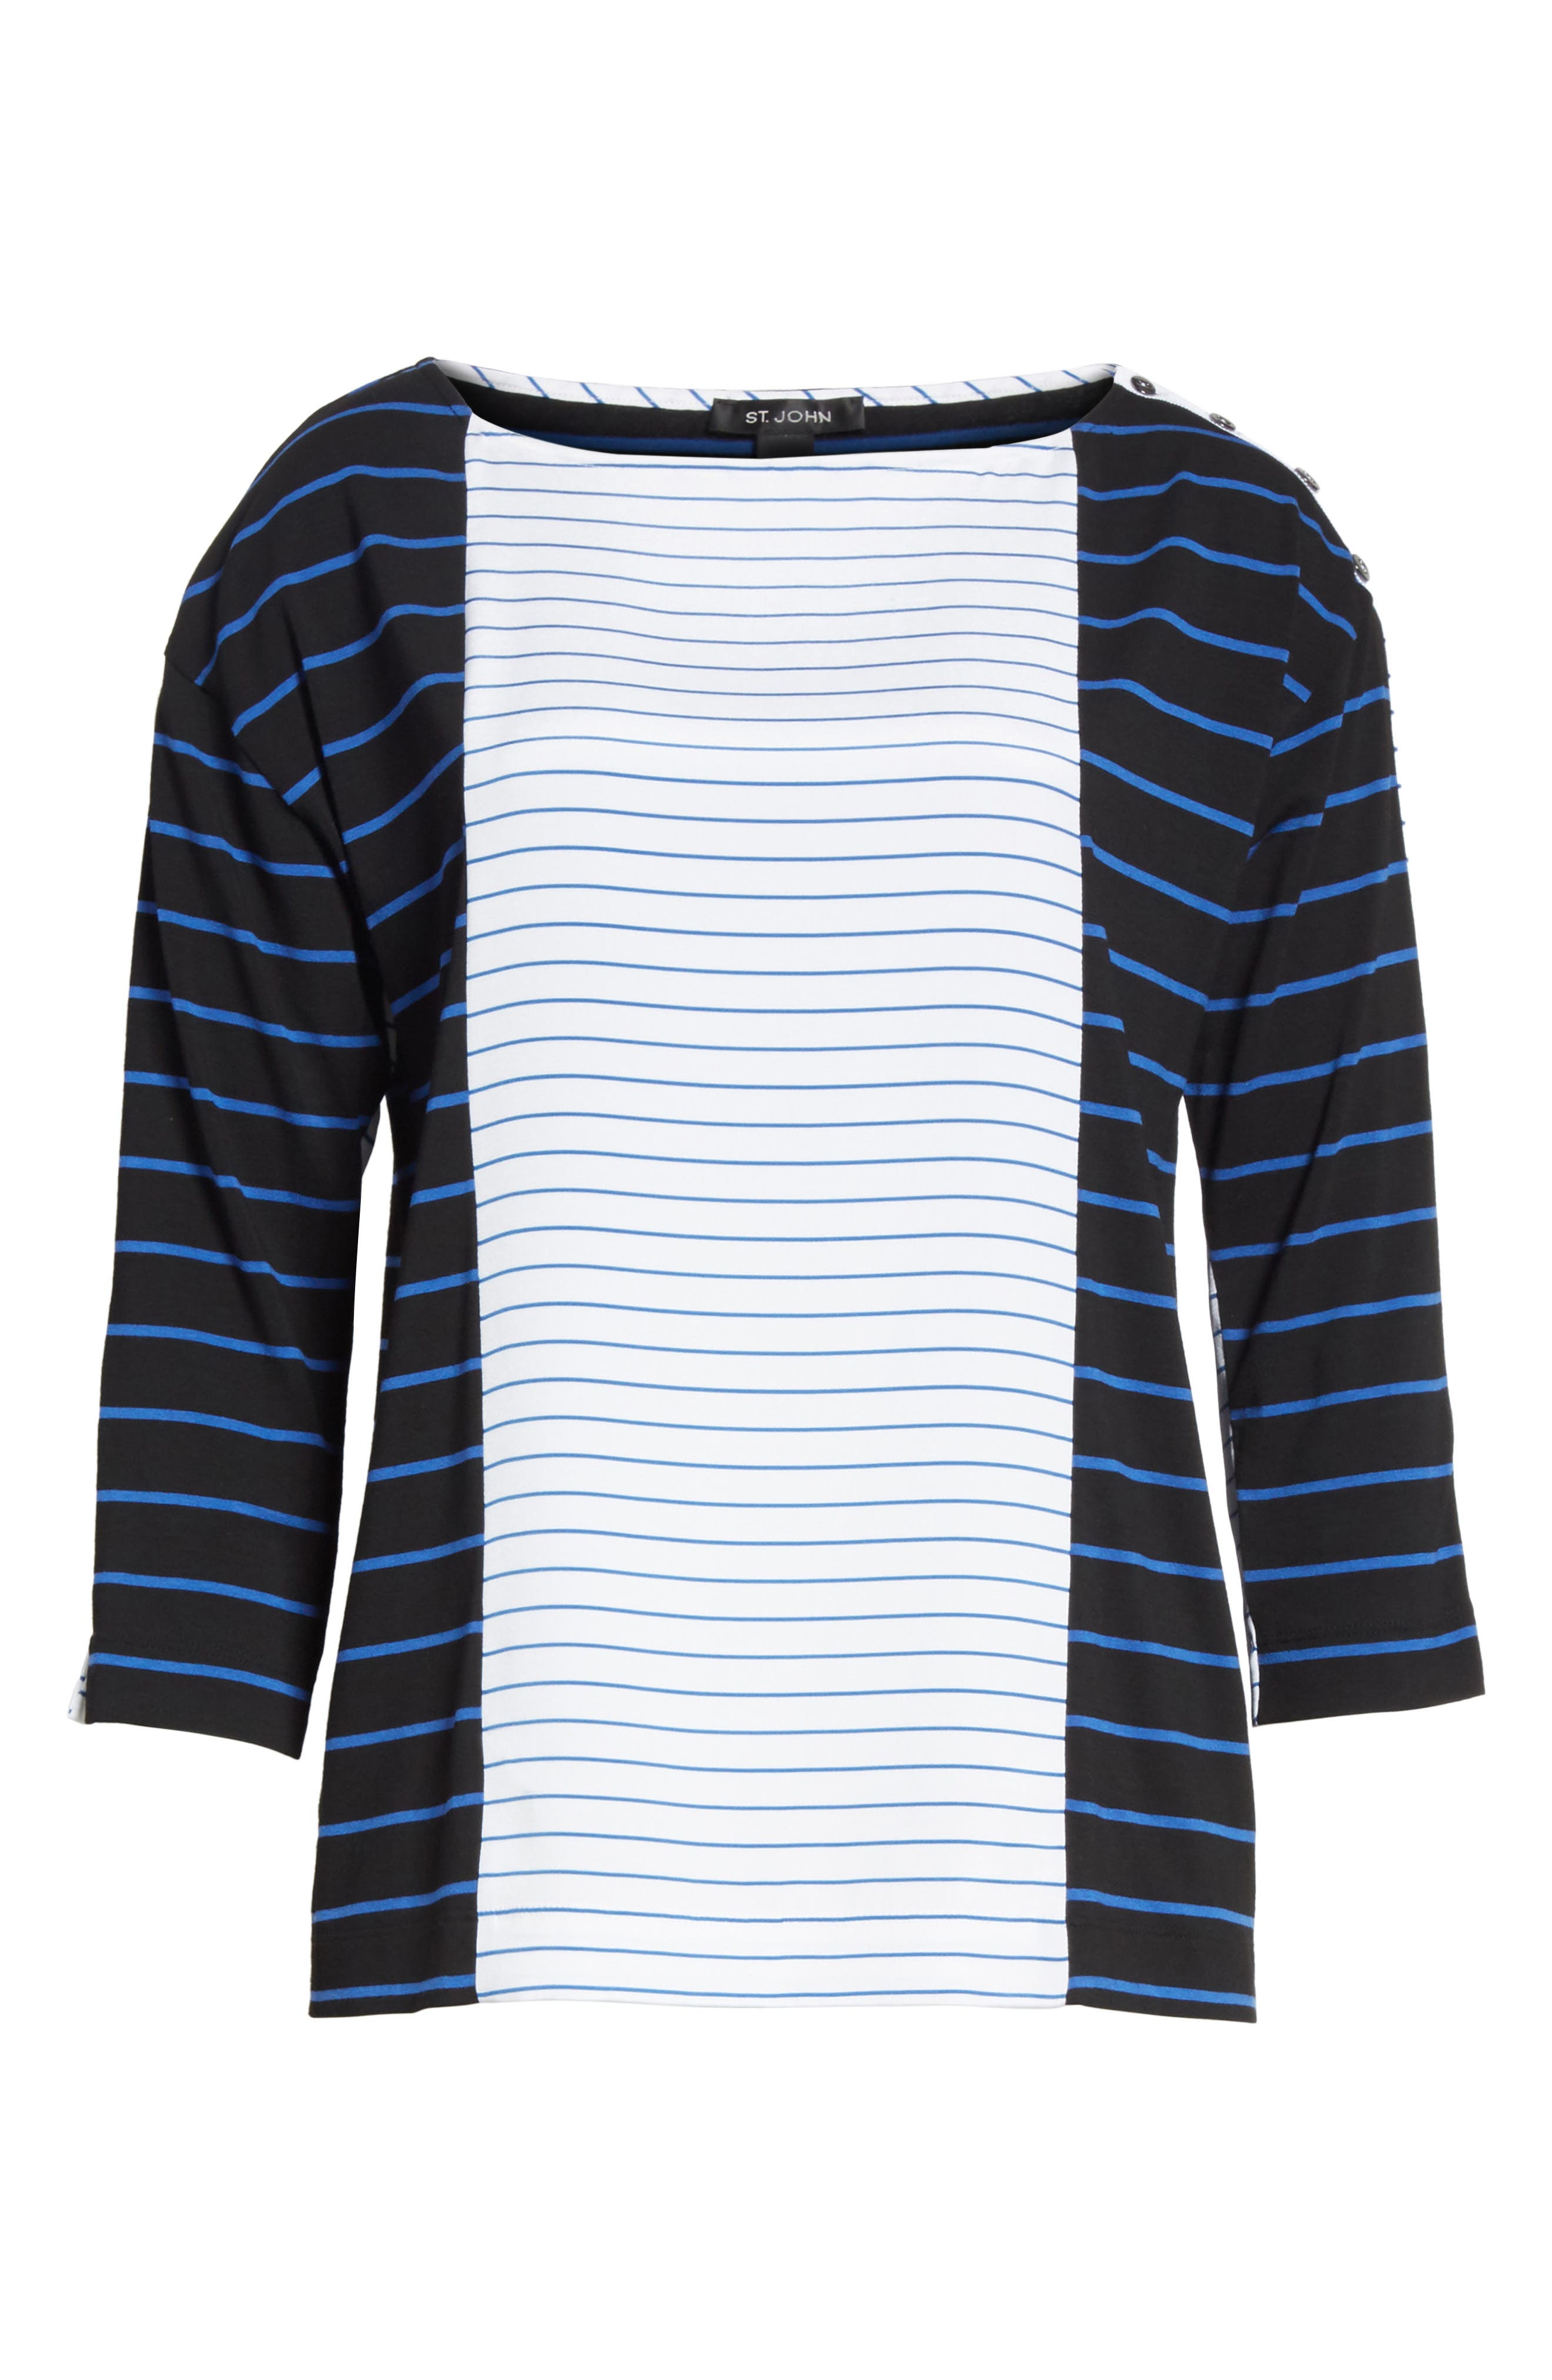 Yarn Dyed Stripe Jersey Top,                             Alternate thumbnail 6, color,                             001